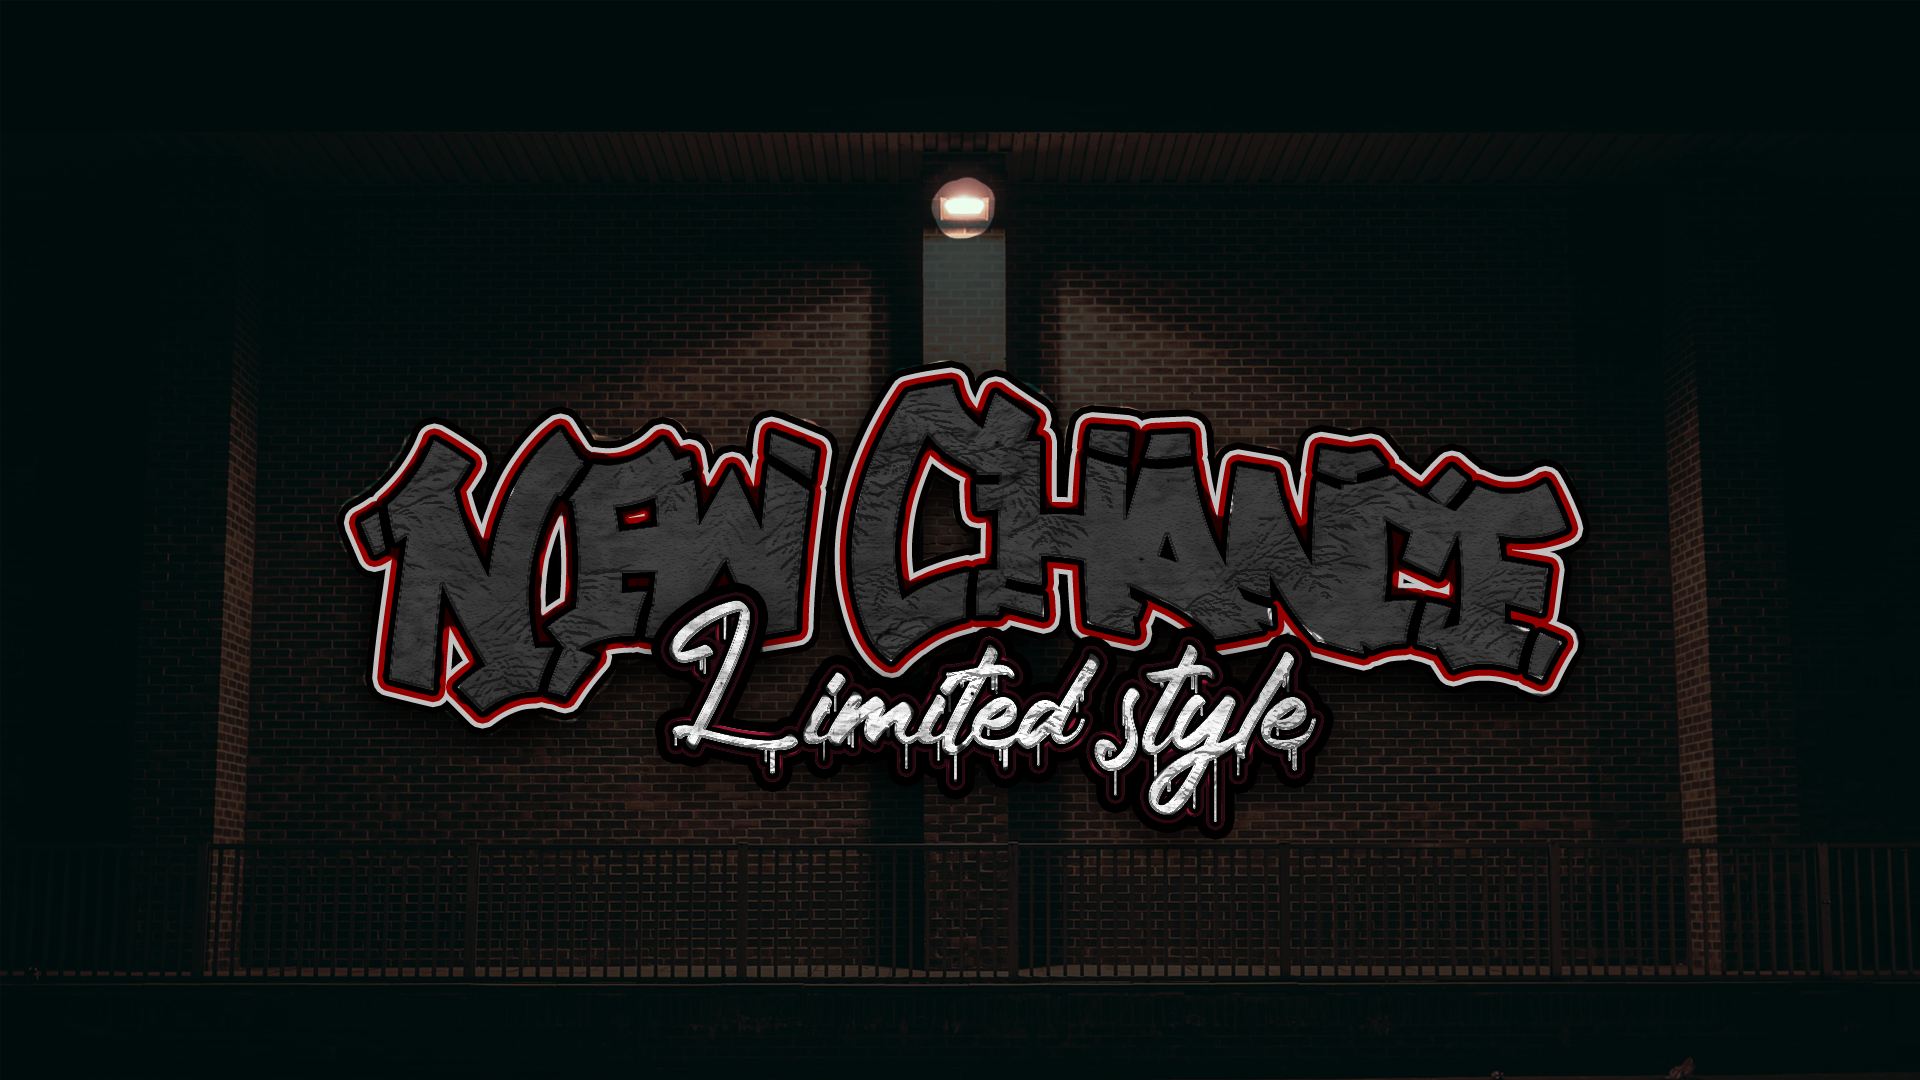 New Chance Limited Style webshop